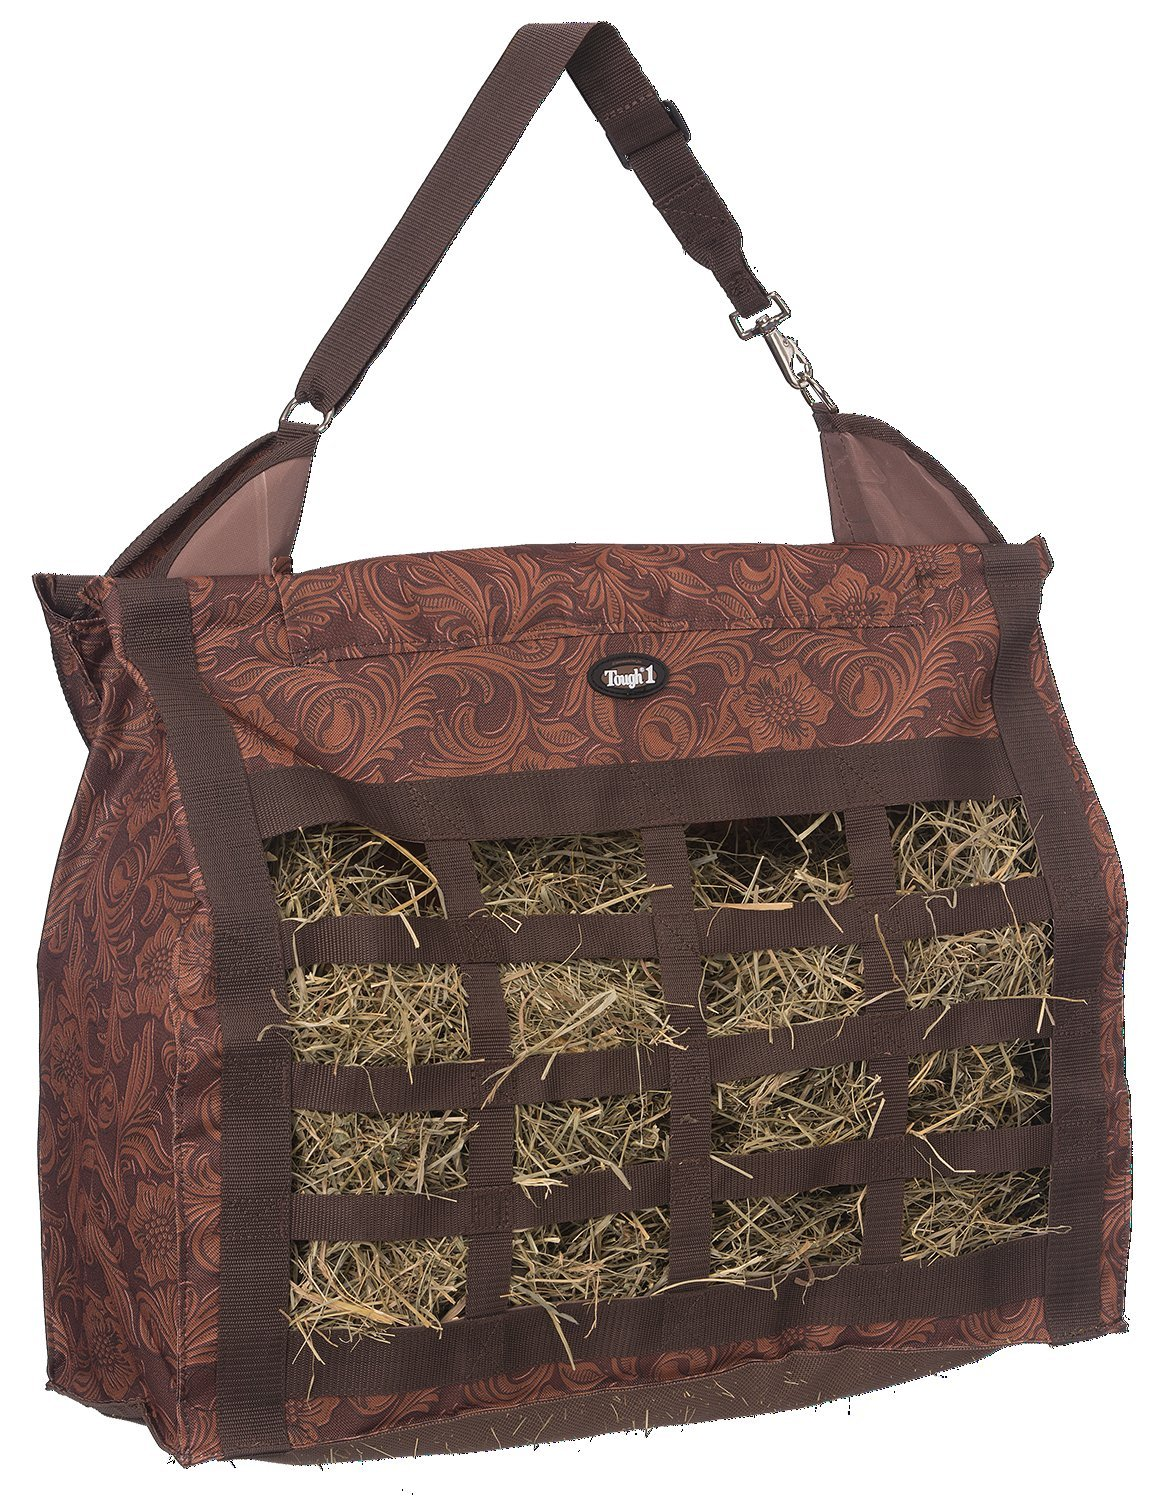 Tough 1 Heavy Denier Nylon Hay Tote Bag in Prints, Tooled Leather Brown by Tough 1